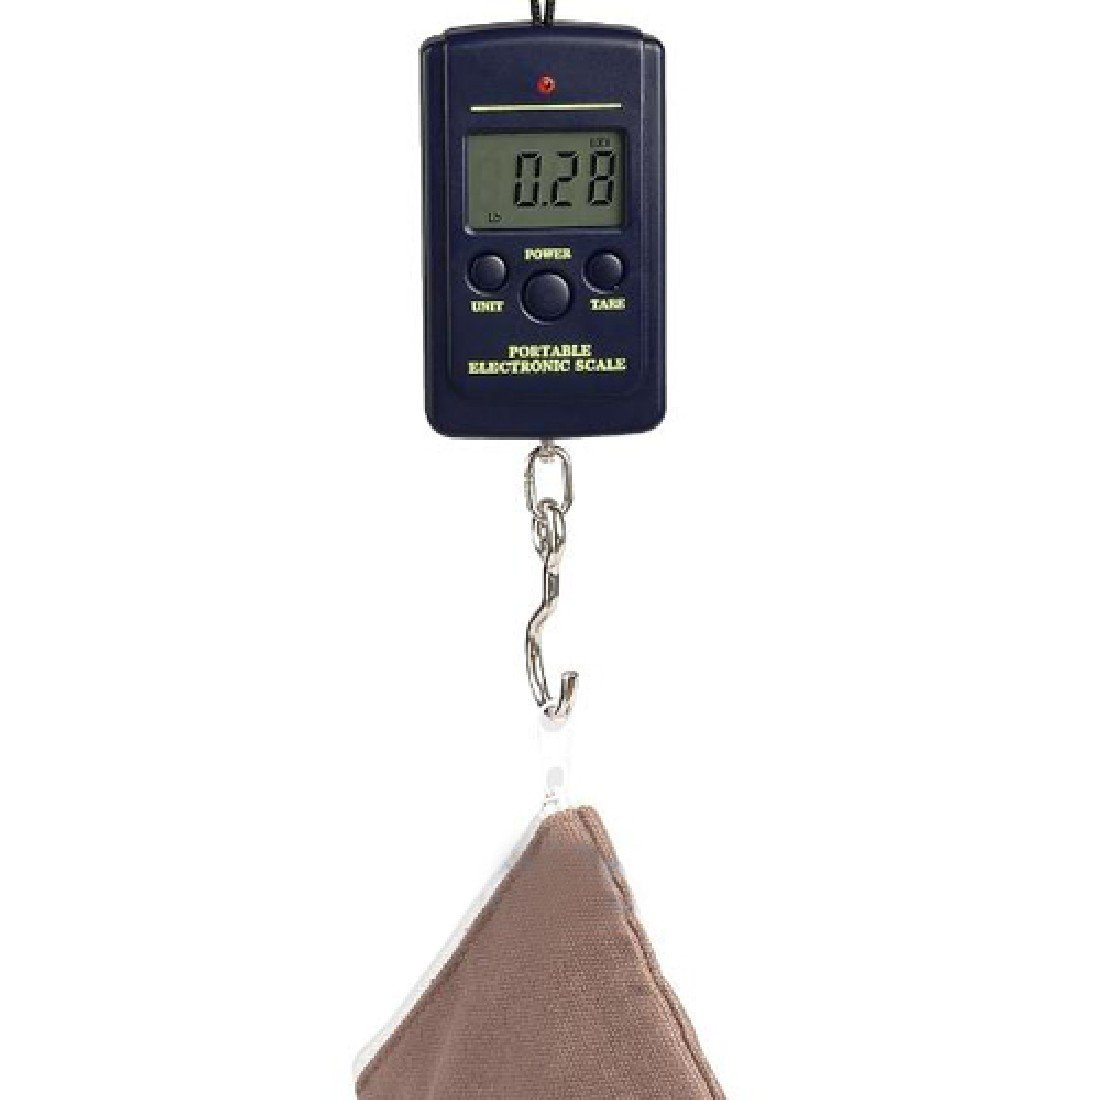 10g-40Kg Multipurpose Digital Hanging Luggage Fishing Weight Scale Electronic Pocket Mini Protable Fish Scales Luwu-Store SHOMLU233